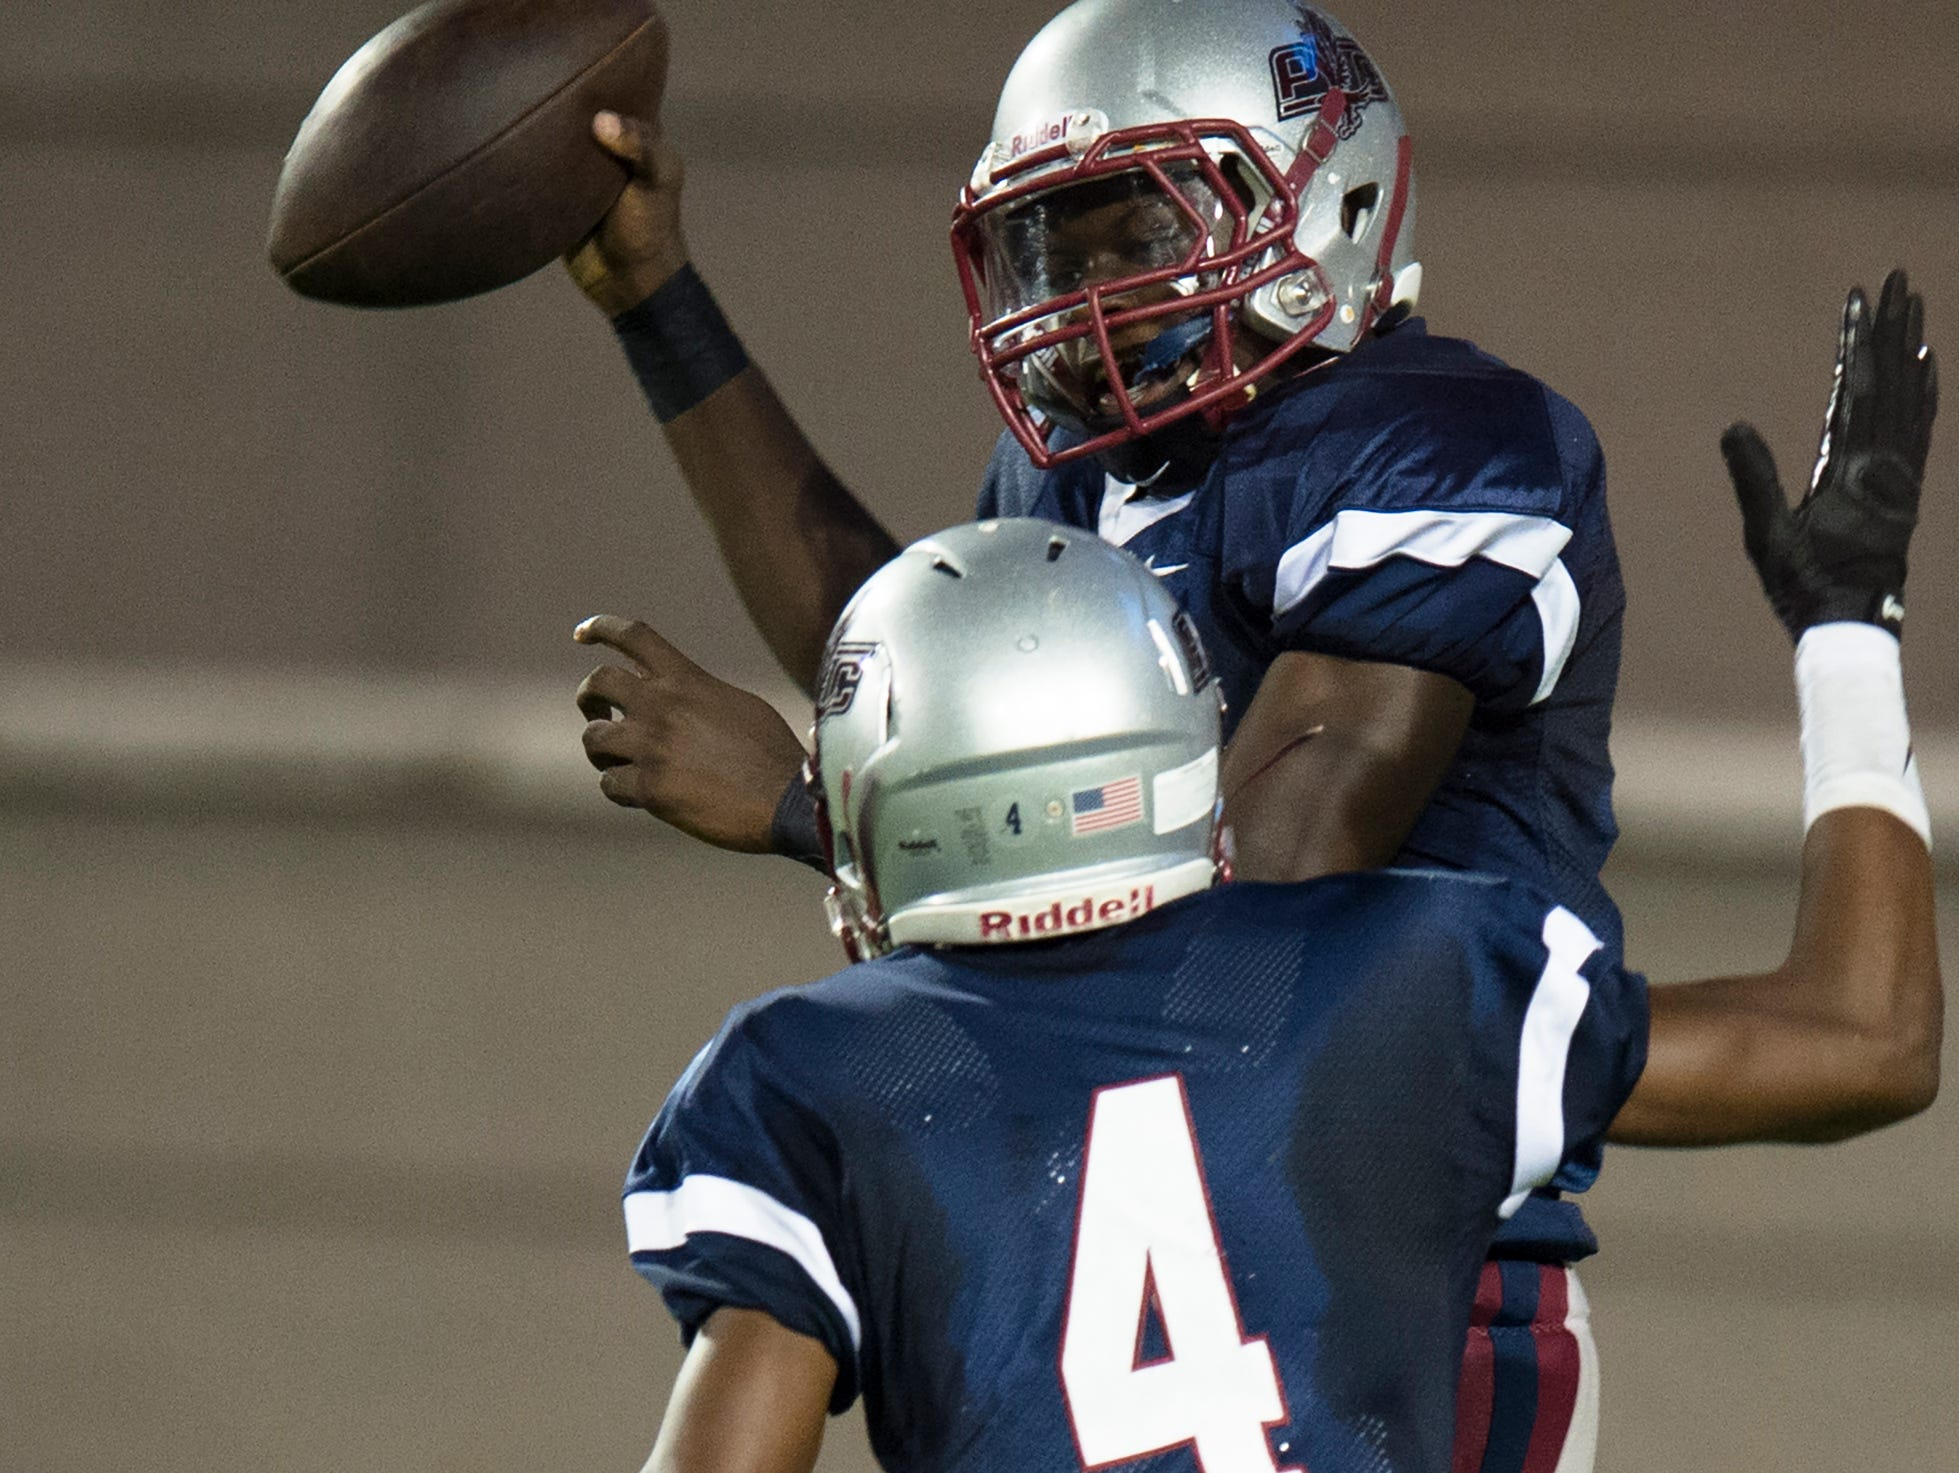 Park Crossing's Malik Cunningham celebrates with Tarrance Scott after scoring a touchdown during the AHSAA football game between Park Crossing High and Dothan High on Thursday, Sept. 3, 2015, in Montgomery, Ala.